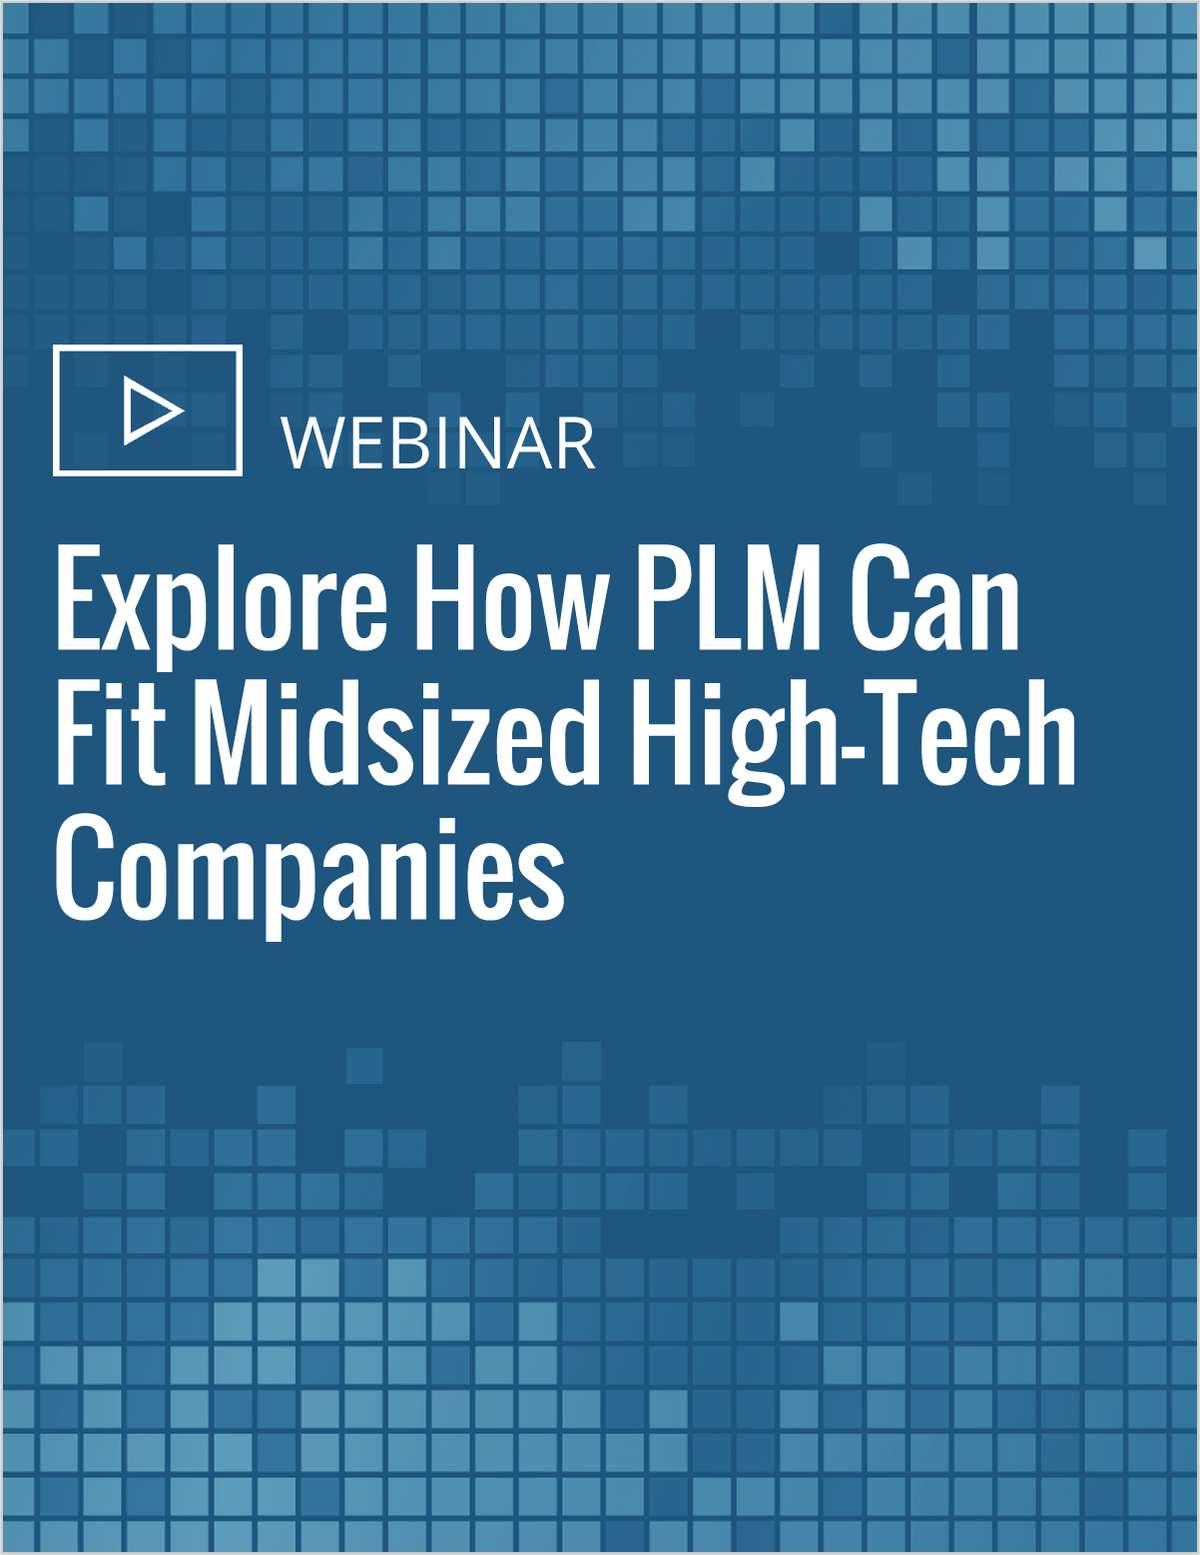 Explore How PLM Can Fit Midsized High-Tech Companies